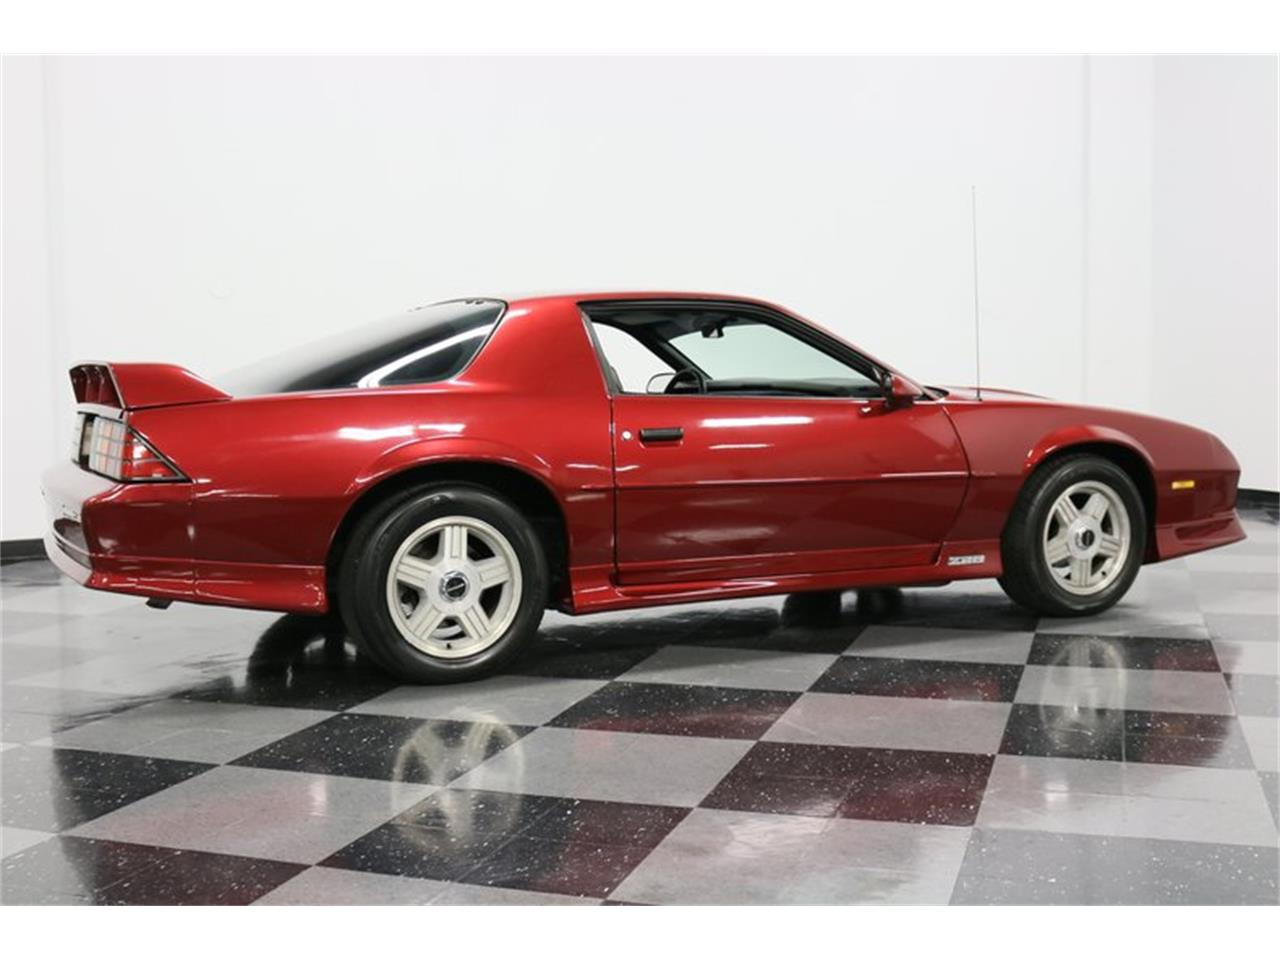 Large Picture of 1991 Chevrolet Camaro Offered by Streetside Classics - Dallas / Fort Worth - PBLJ